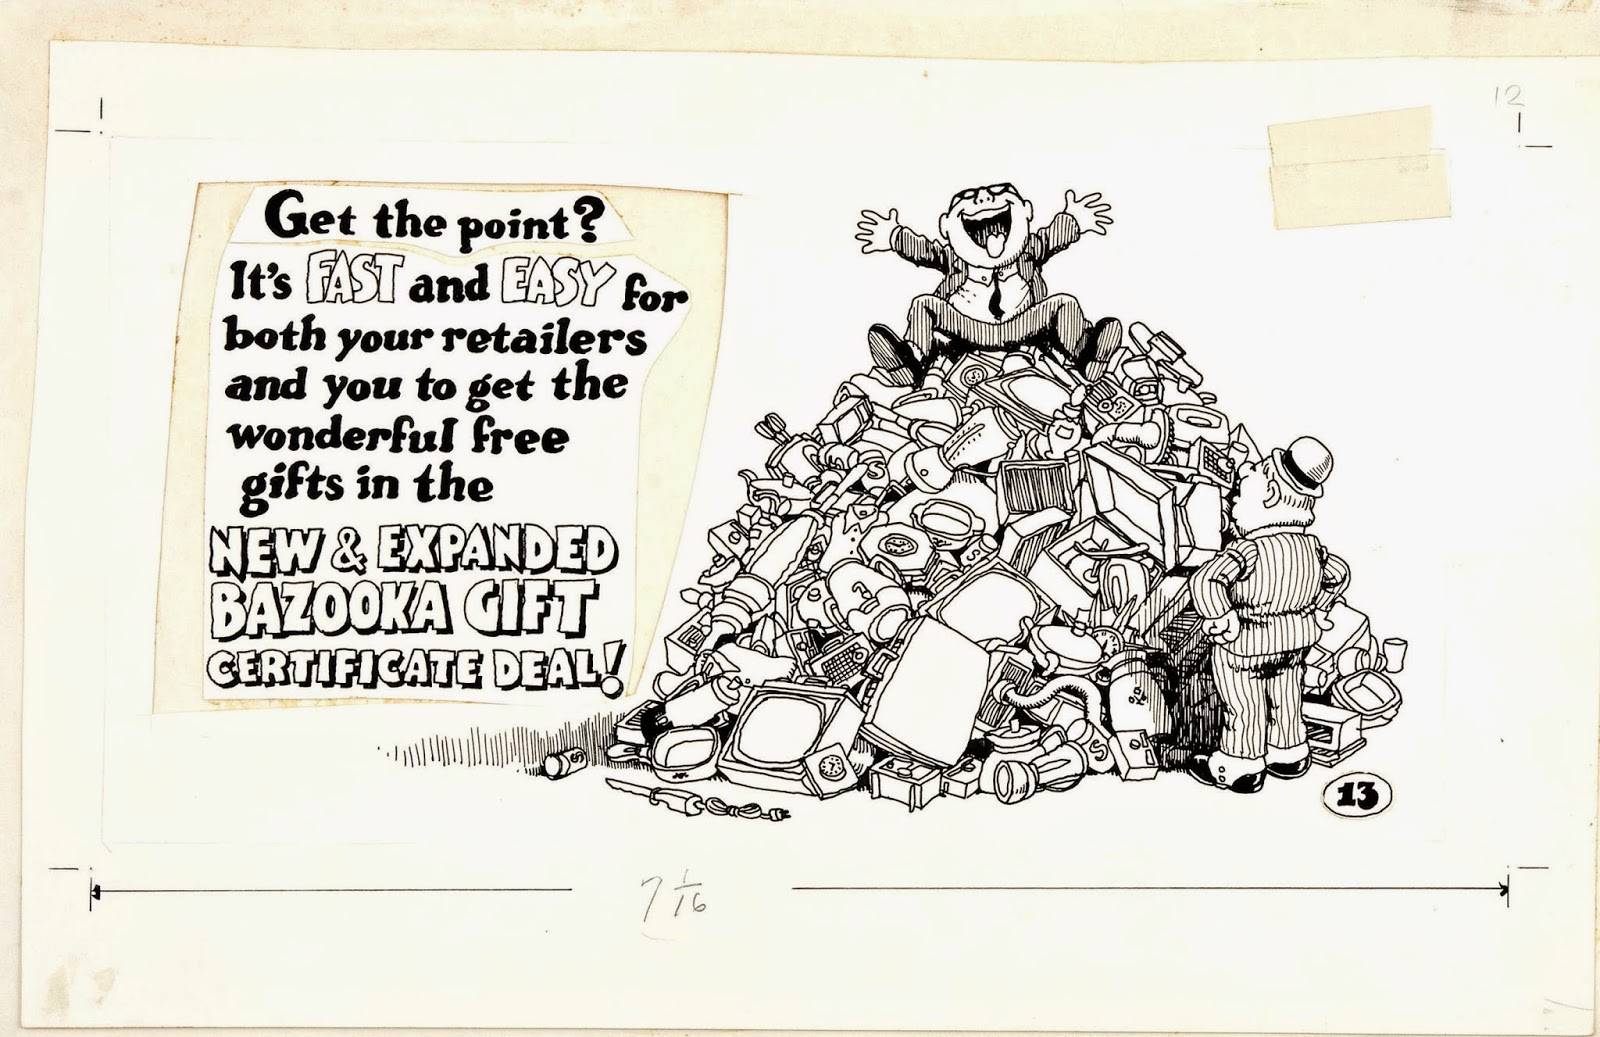 I love the old pasteups everything was done manually back then